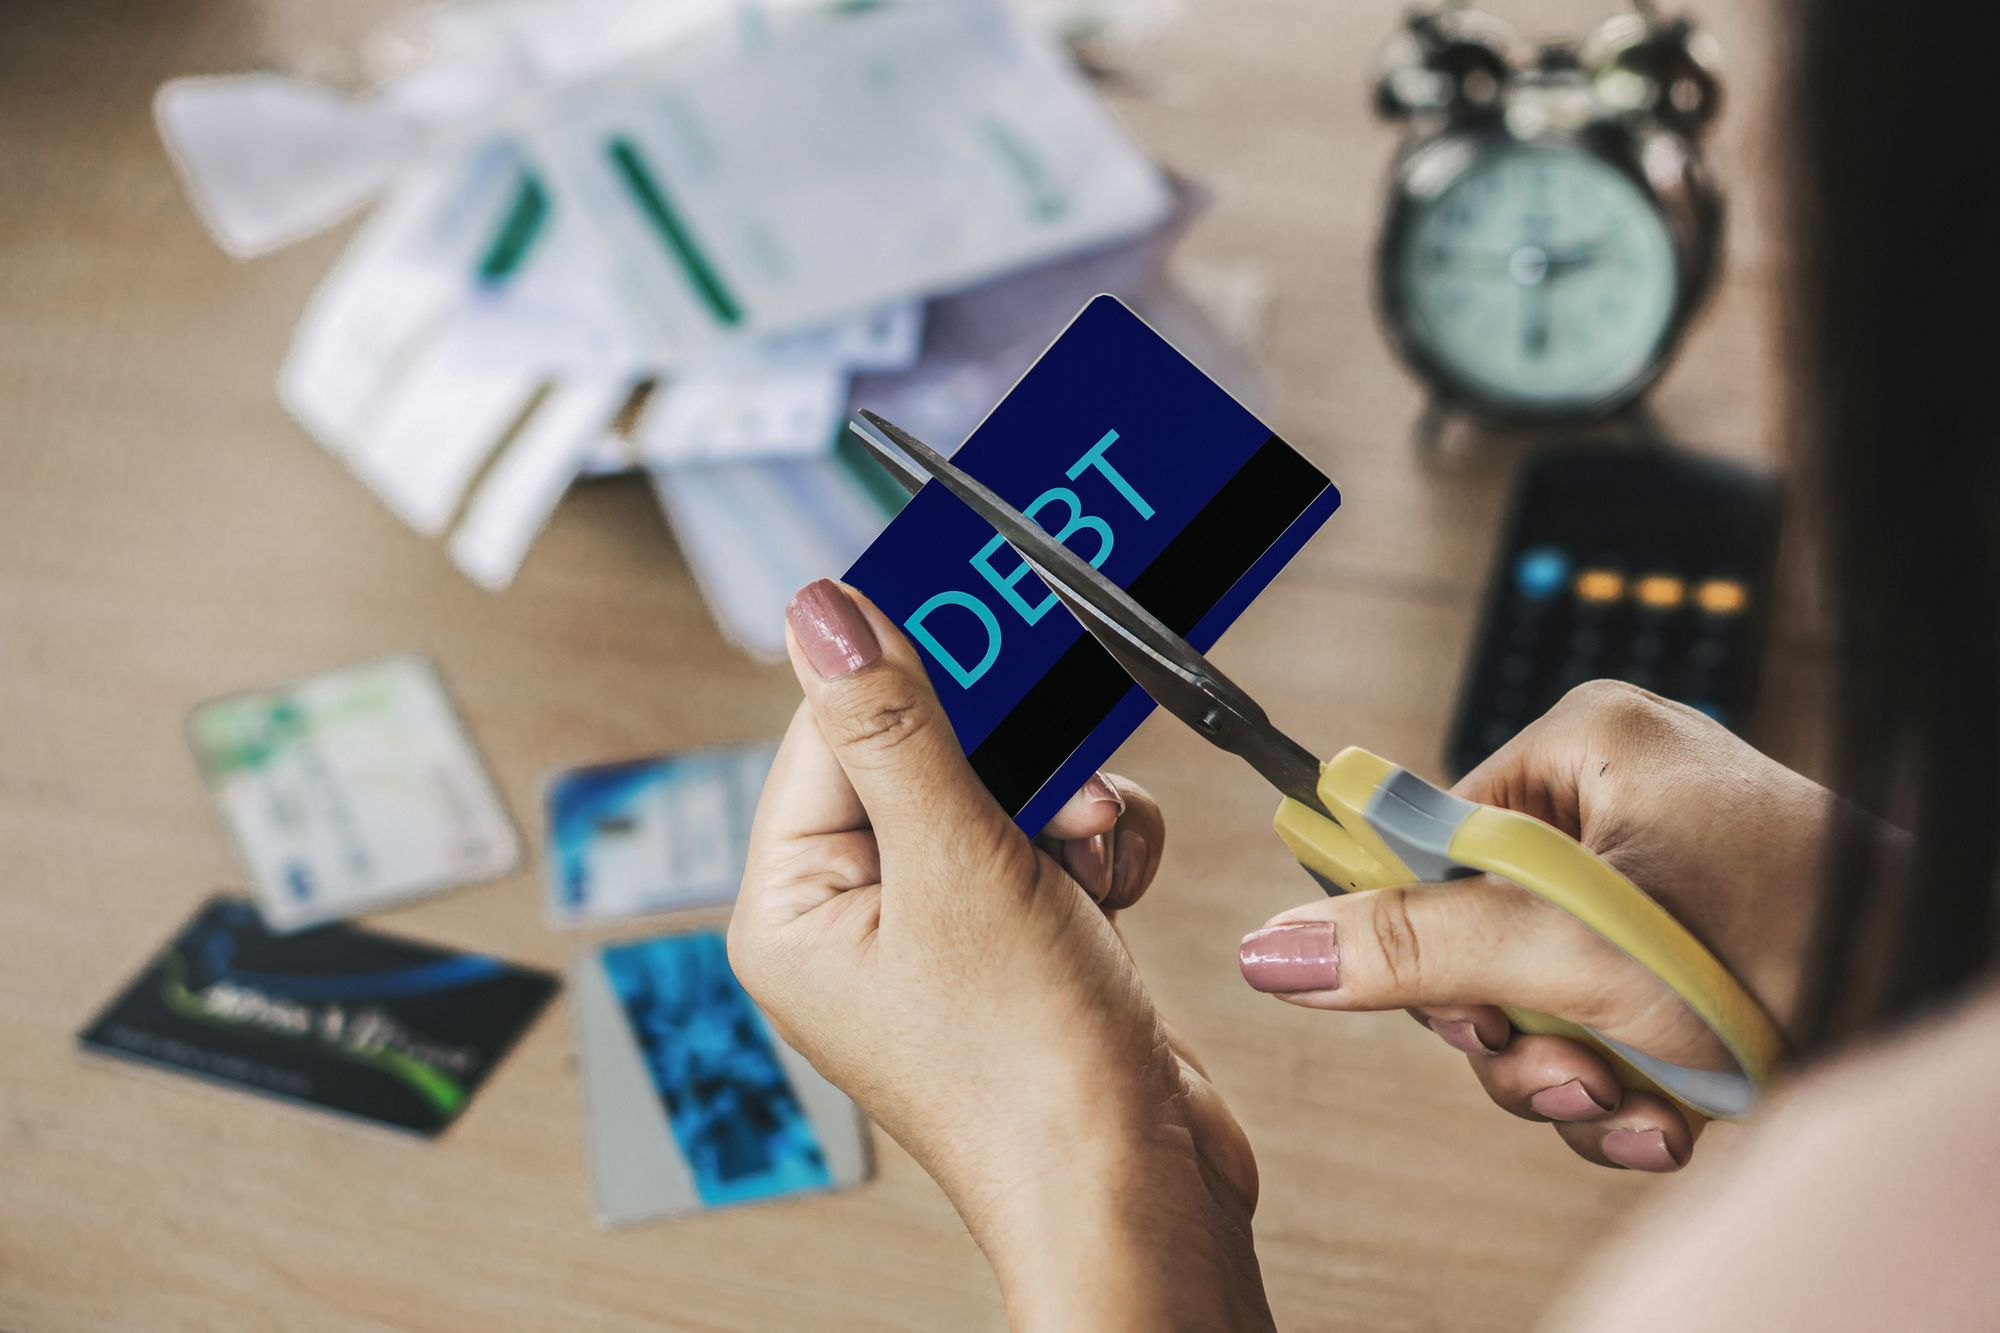 A Personal Loan Can Lift You Out of Credit Card Debt, Raise Your Credit Score